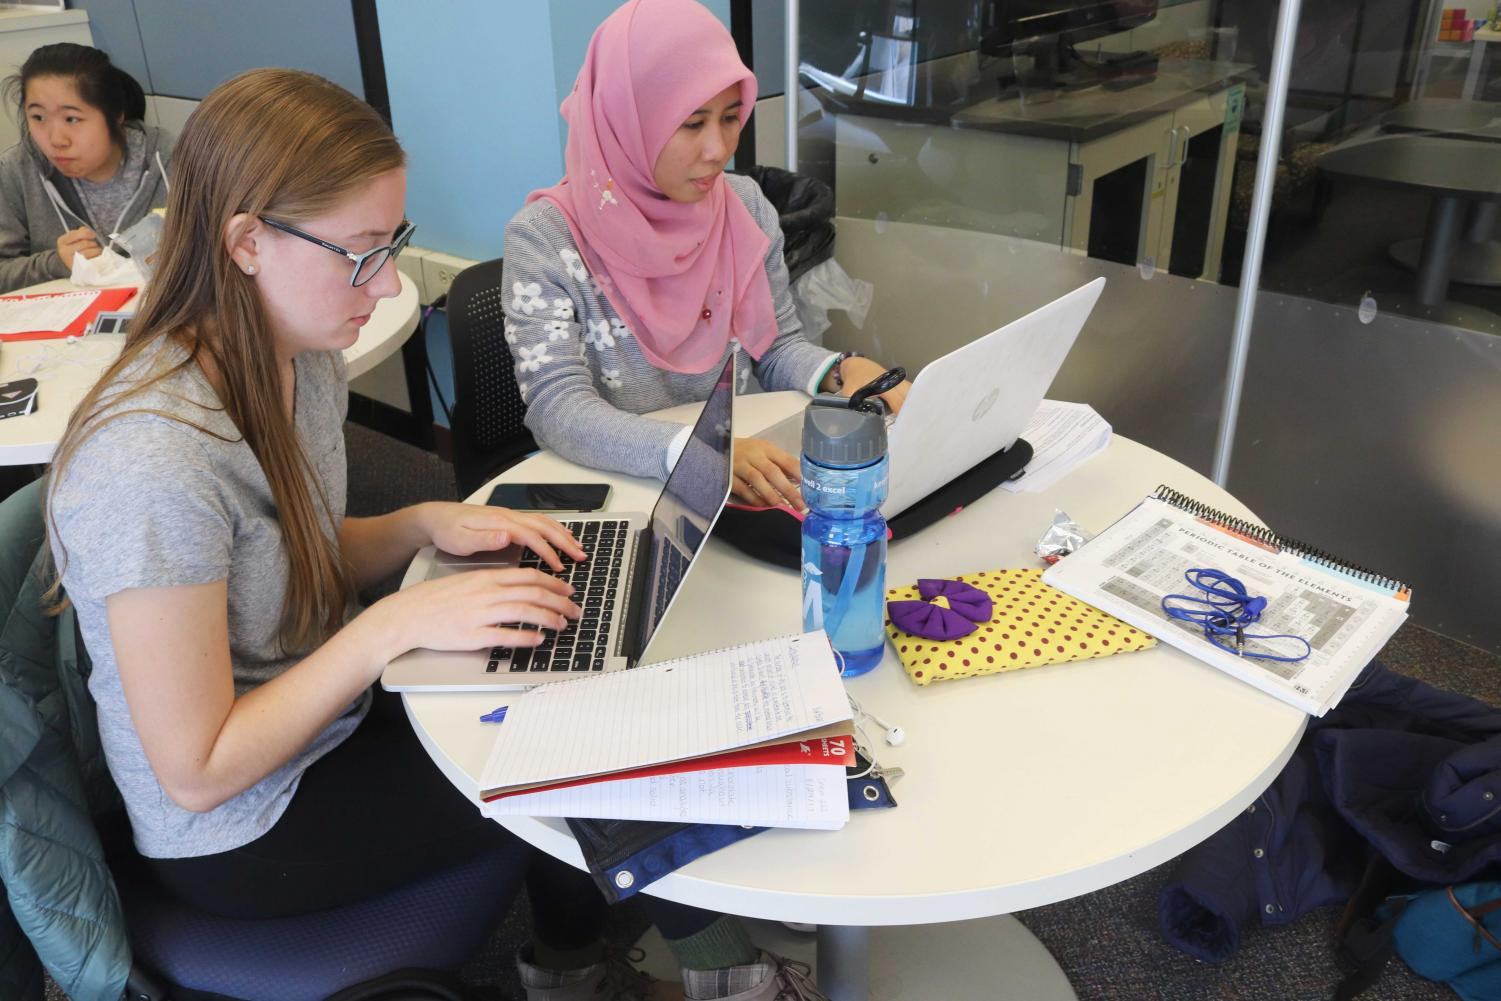 Sophomores, Eva Bucke and Hazirah Muhamad, utilize their time at the Undergraduate Library to study and work on a project together.